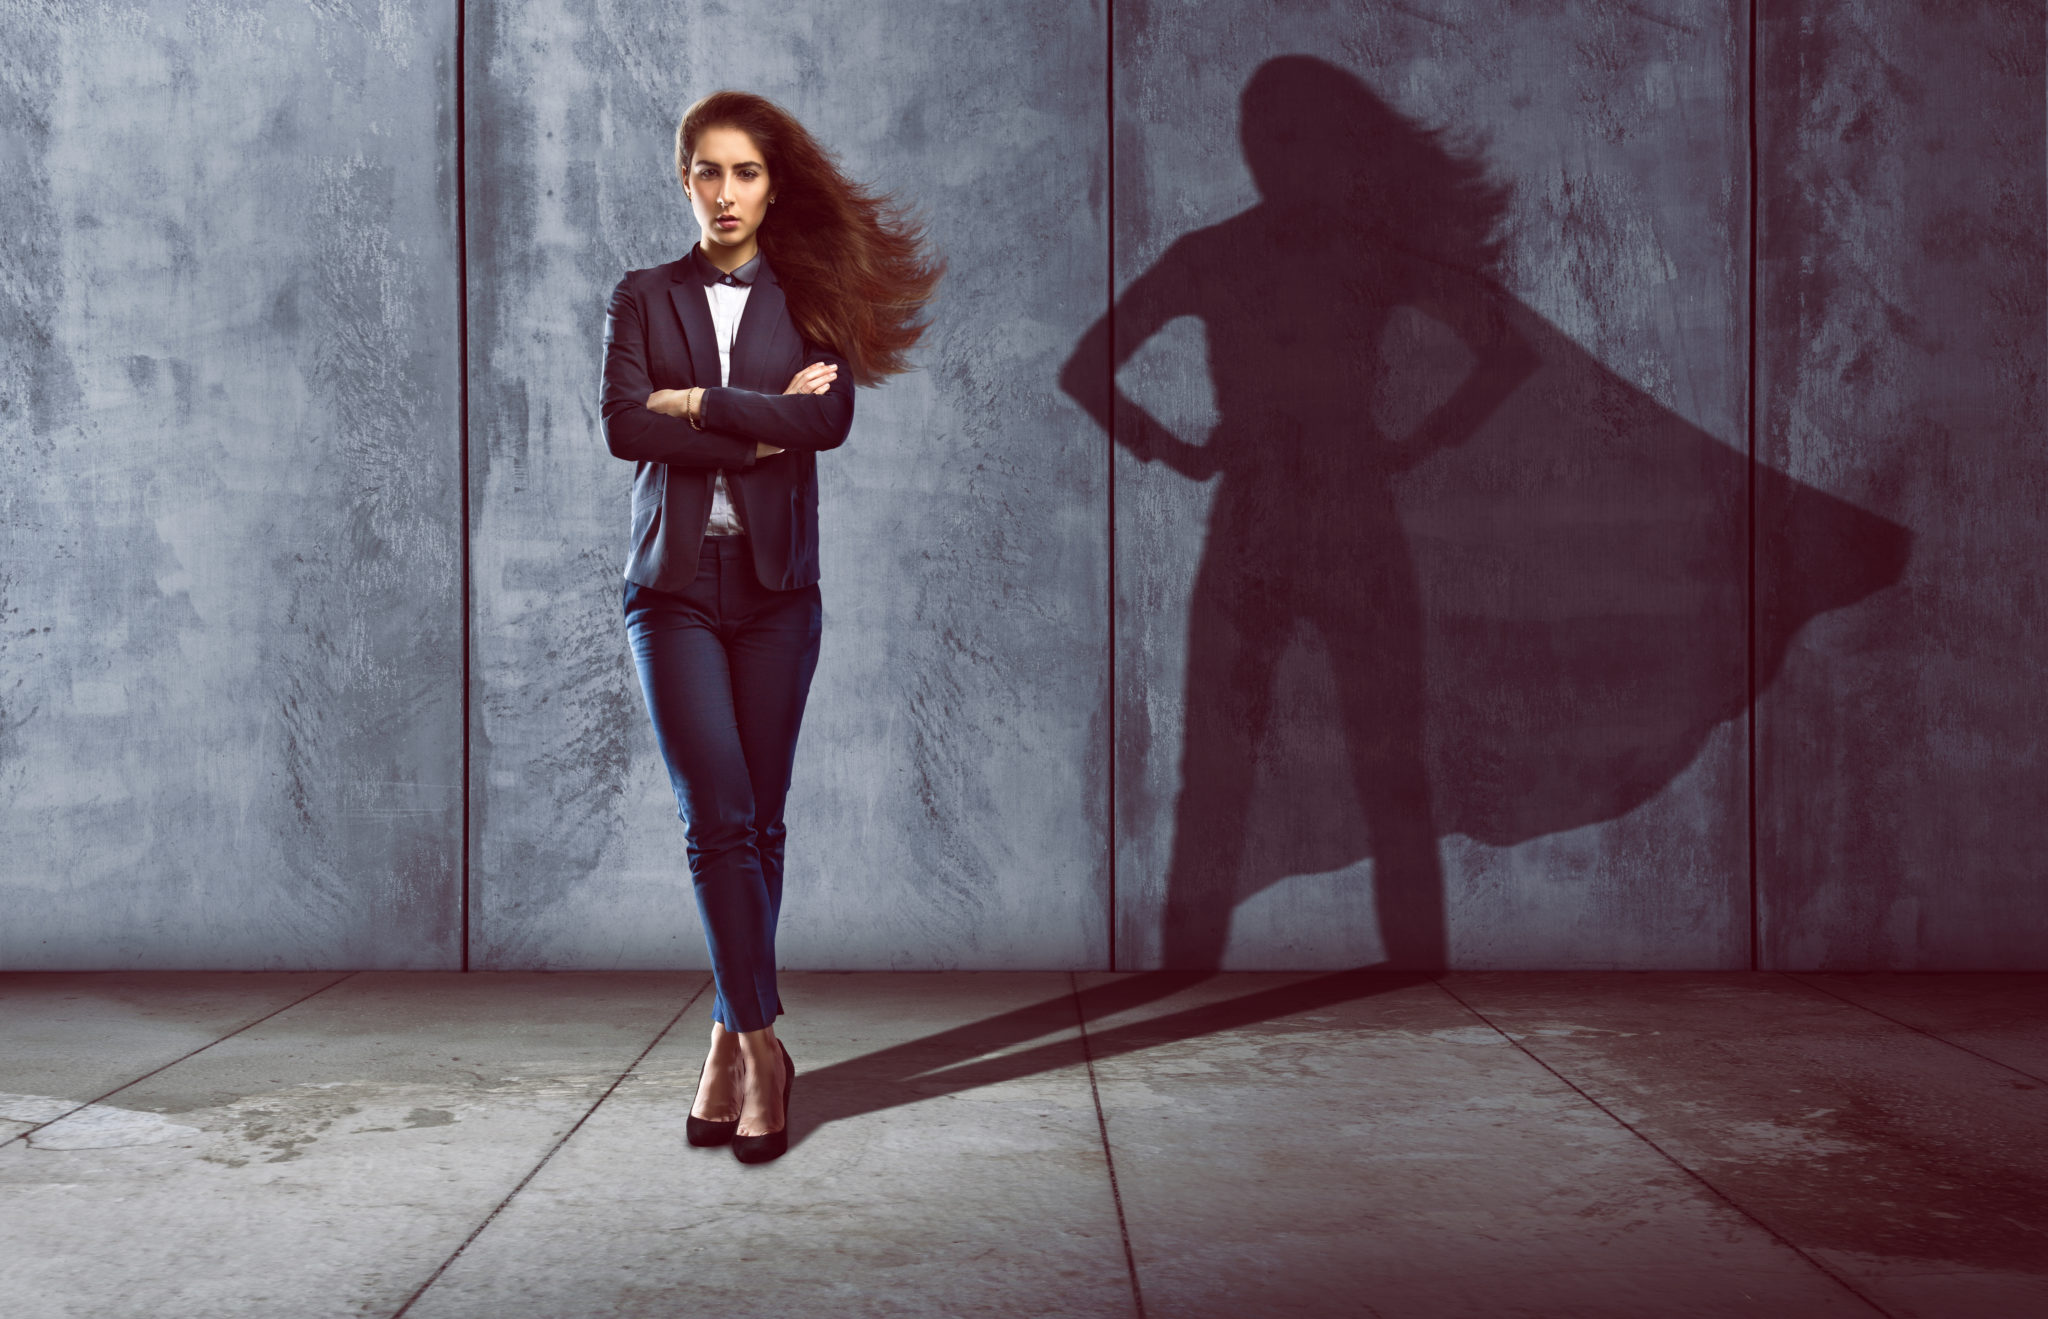 The 10 Steps to Confidence That No One Told You About